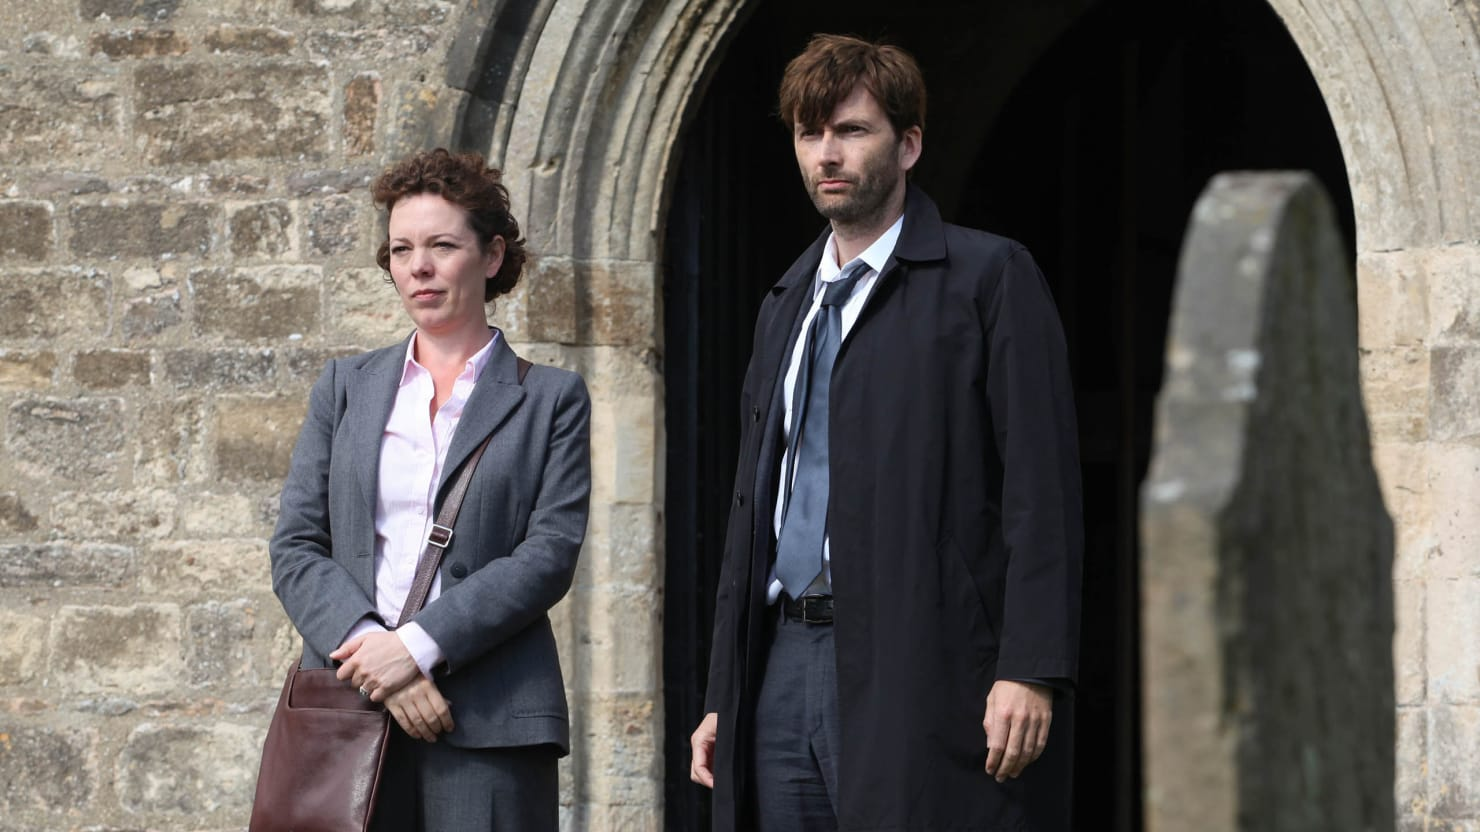 British Crime Dramas Explore the Dark Side of Small Town Life